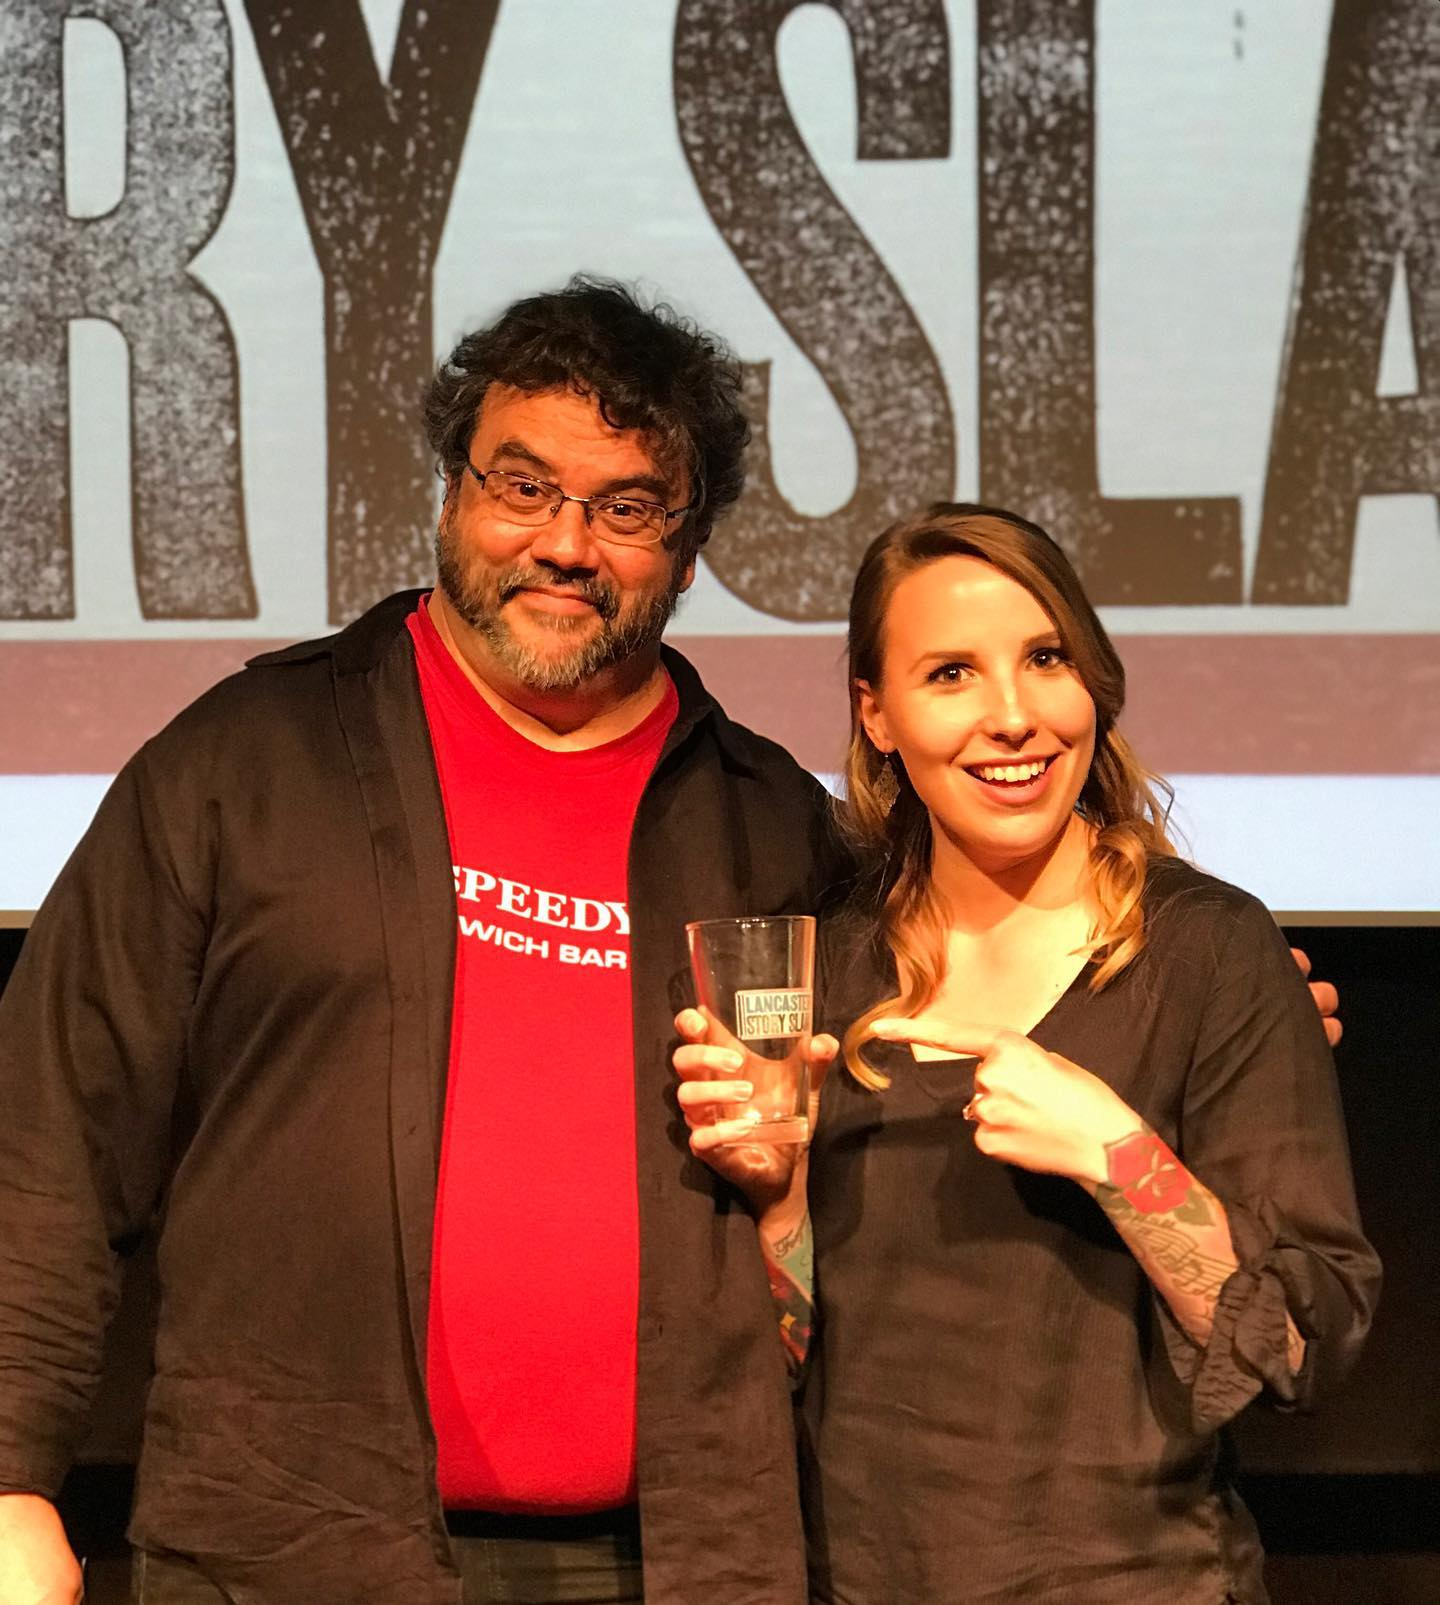 Pictured are David Smith (emcee) with our winning storyteller, Gina Melasecca, who won our prized pint glass and a spot in the Grand Slam in November!